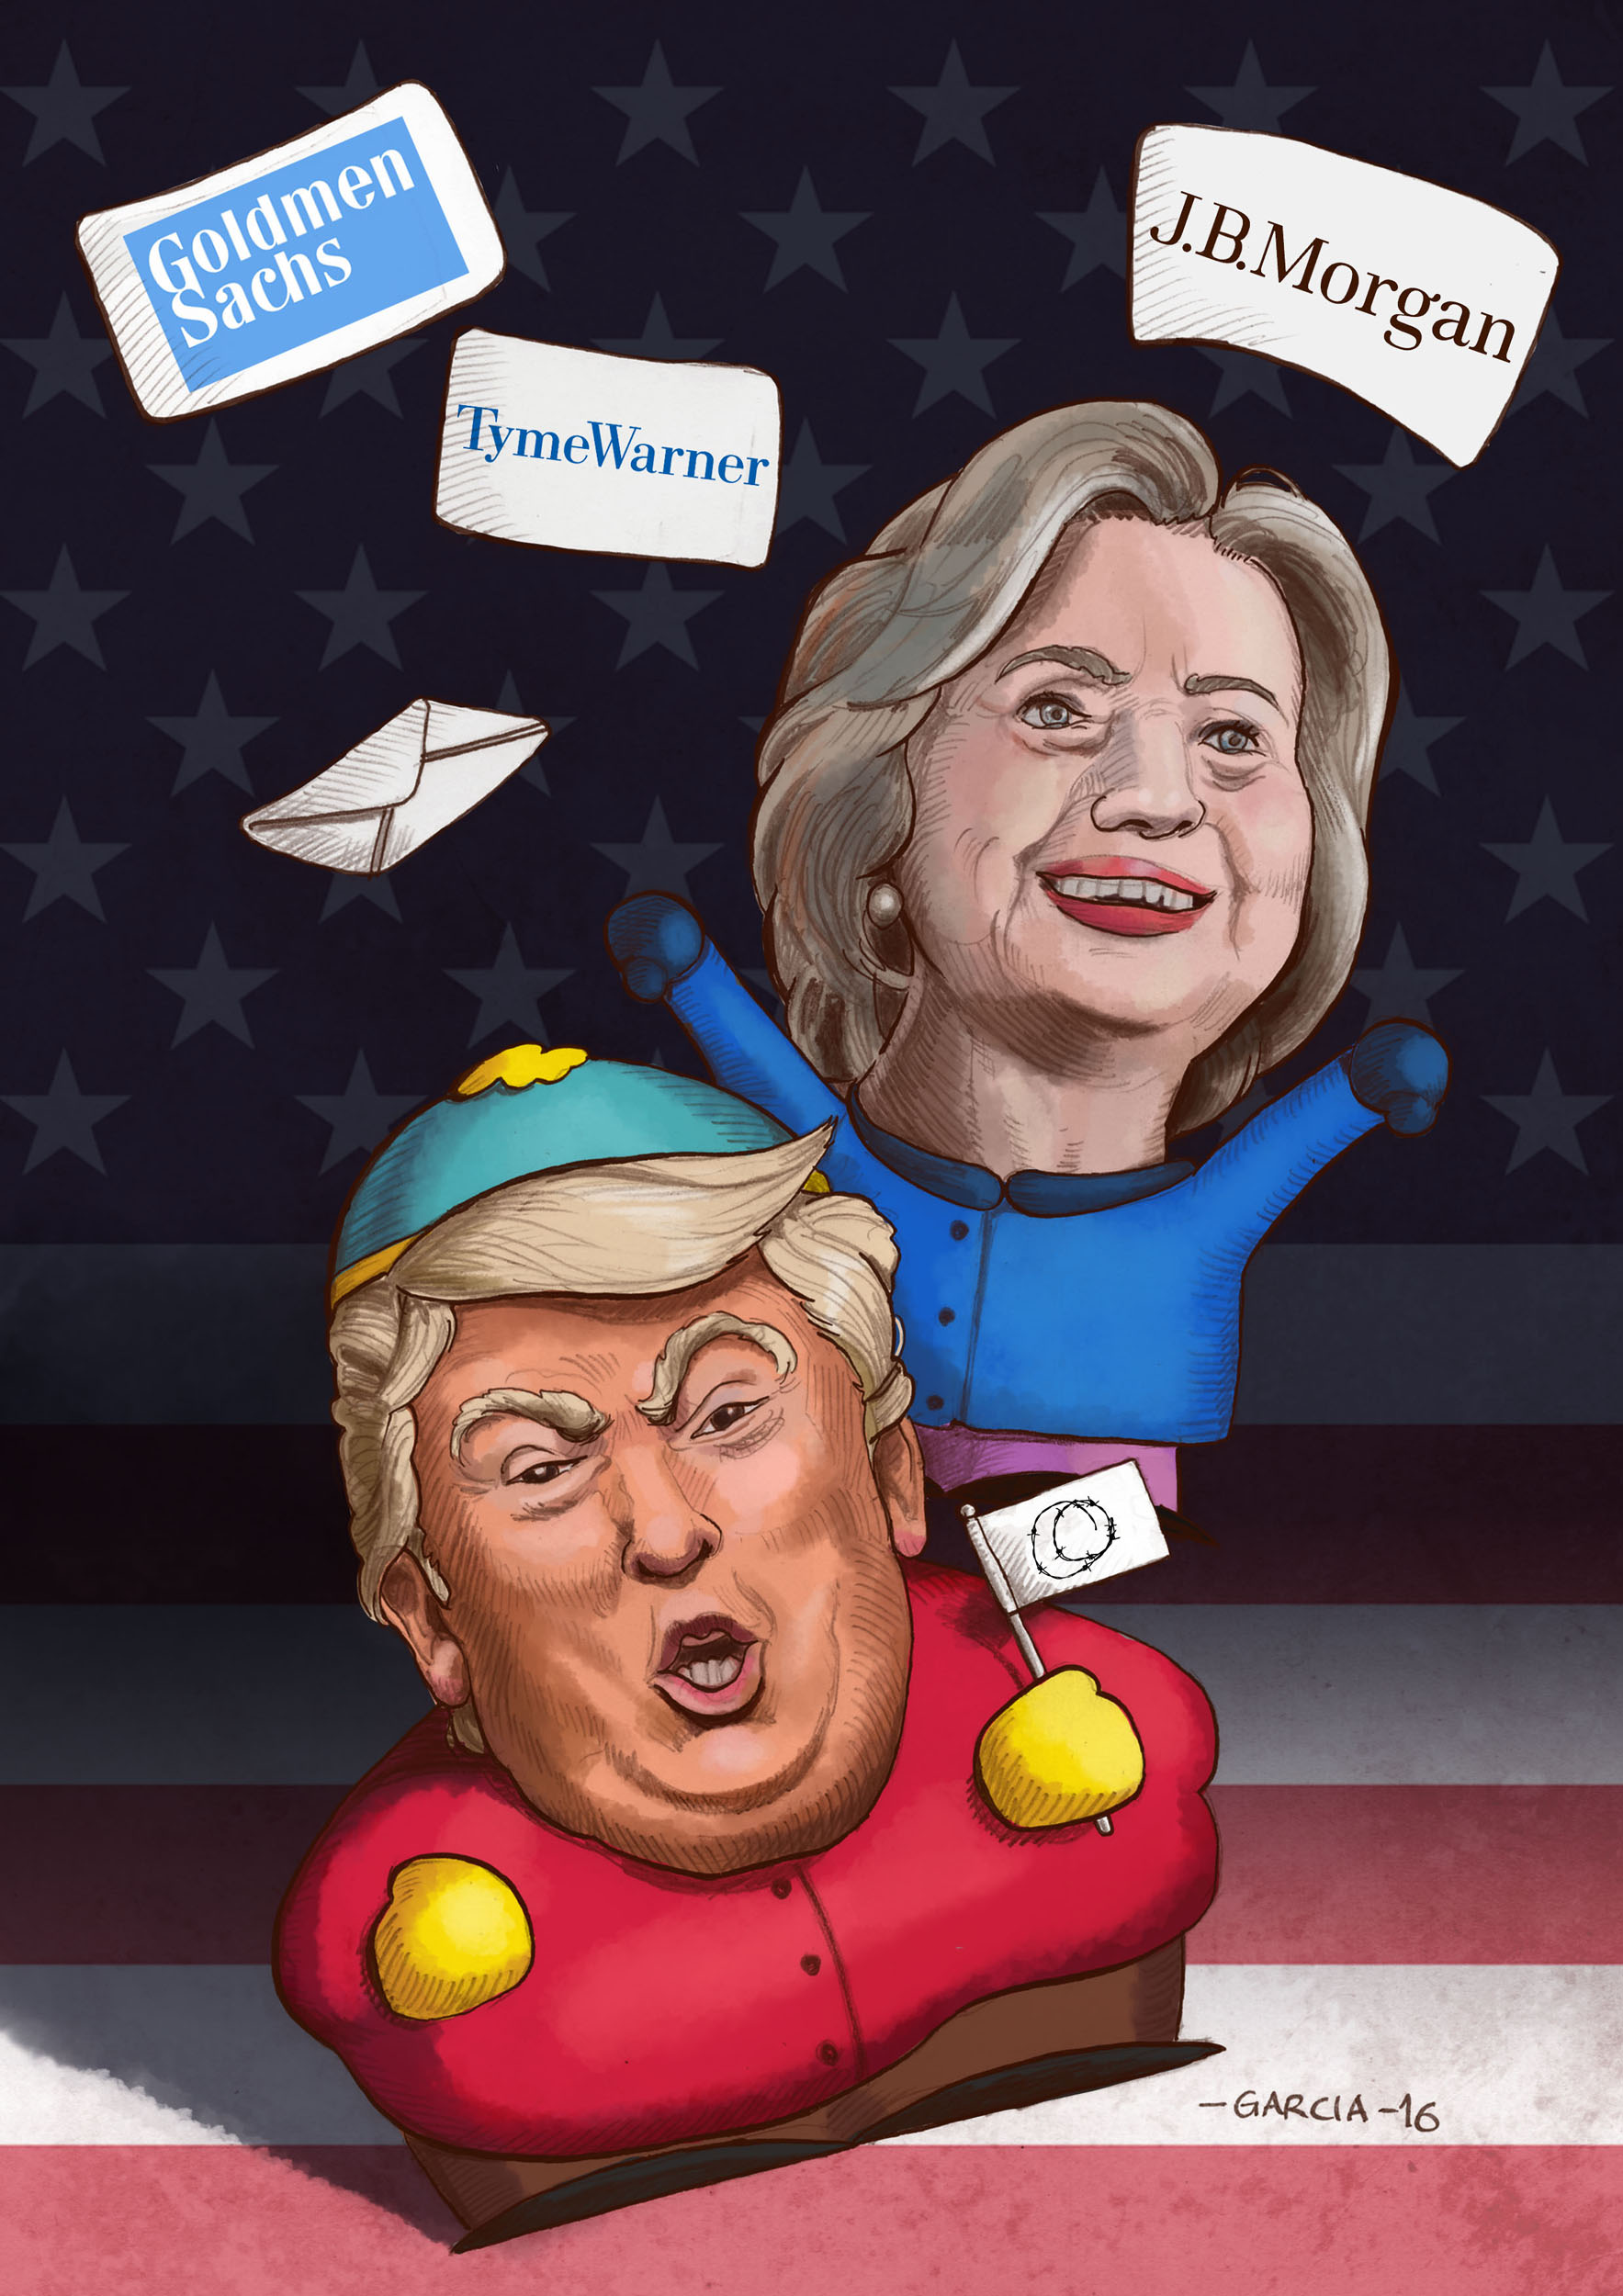 daniel-garcia-art-illustration-usa-presidential-election-2016-hillary-trump-with-her-america-great-again